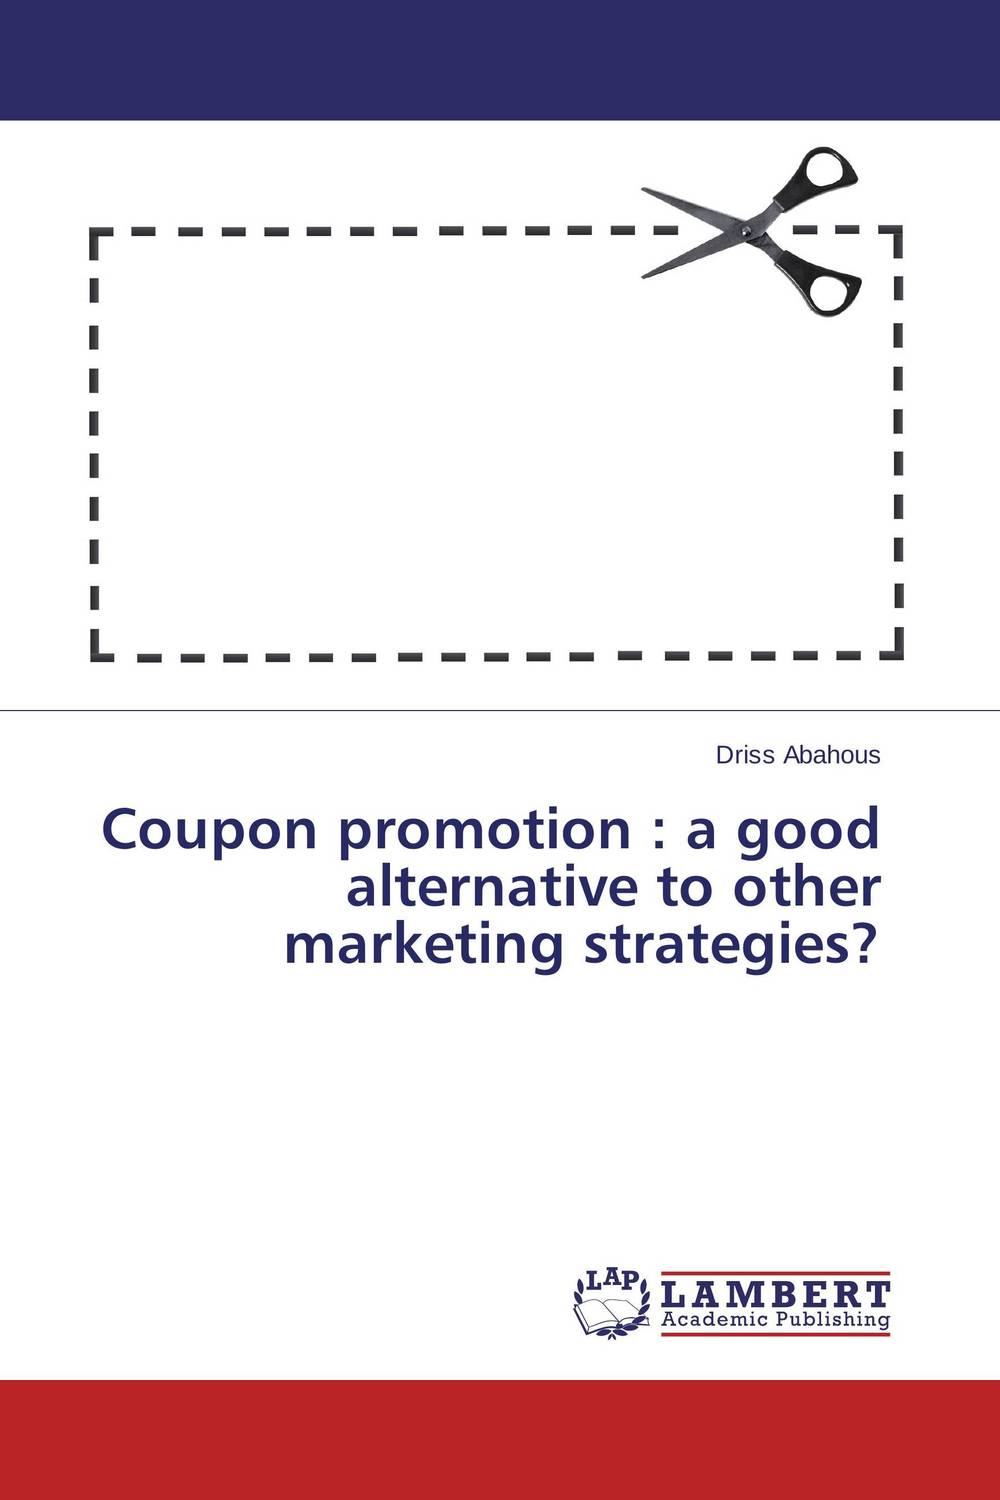 Coupon promotion : a good alternative to other marketing strategies?